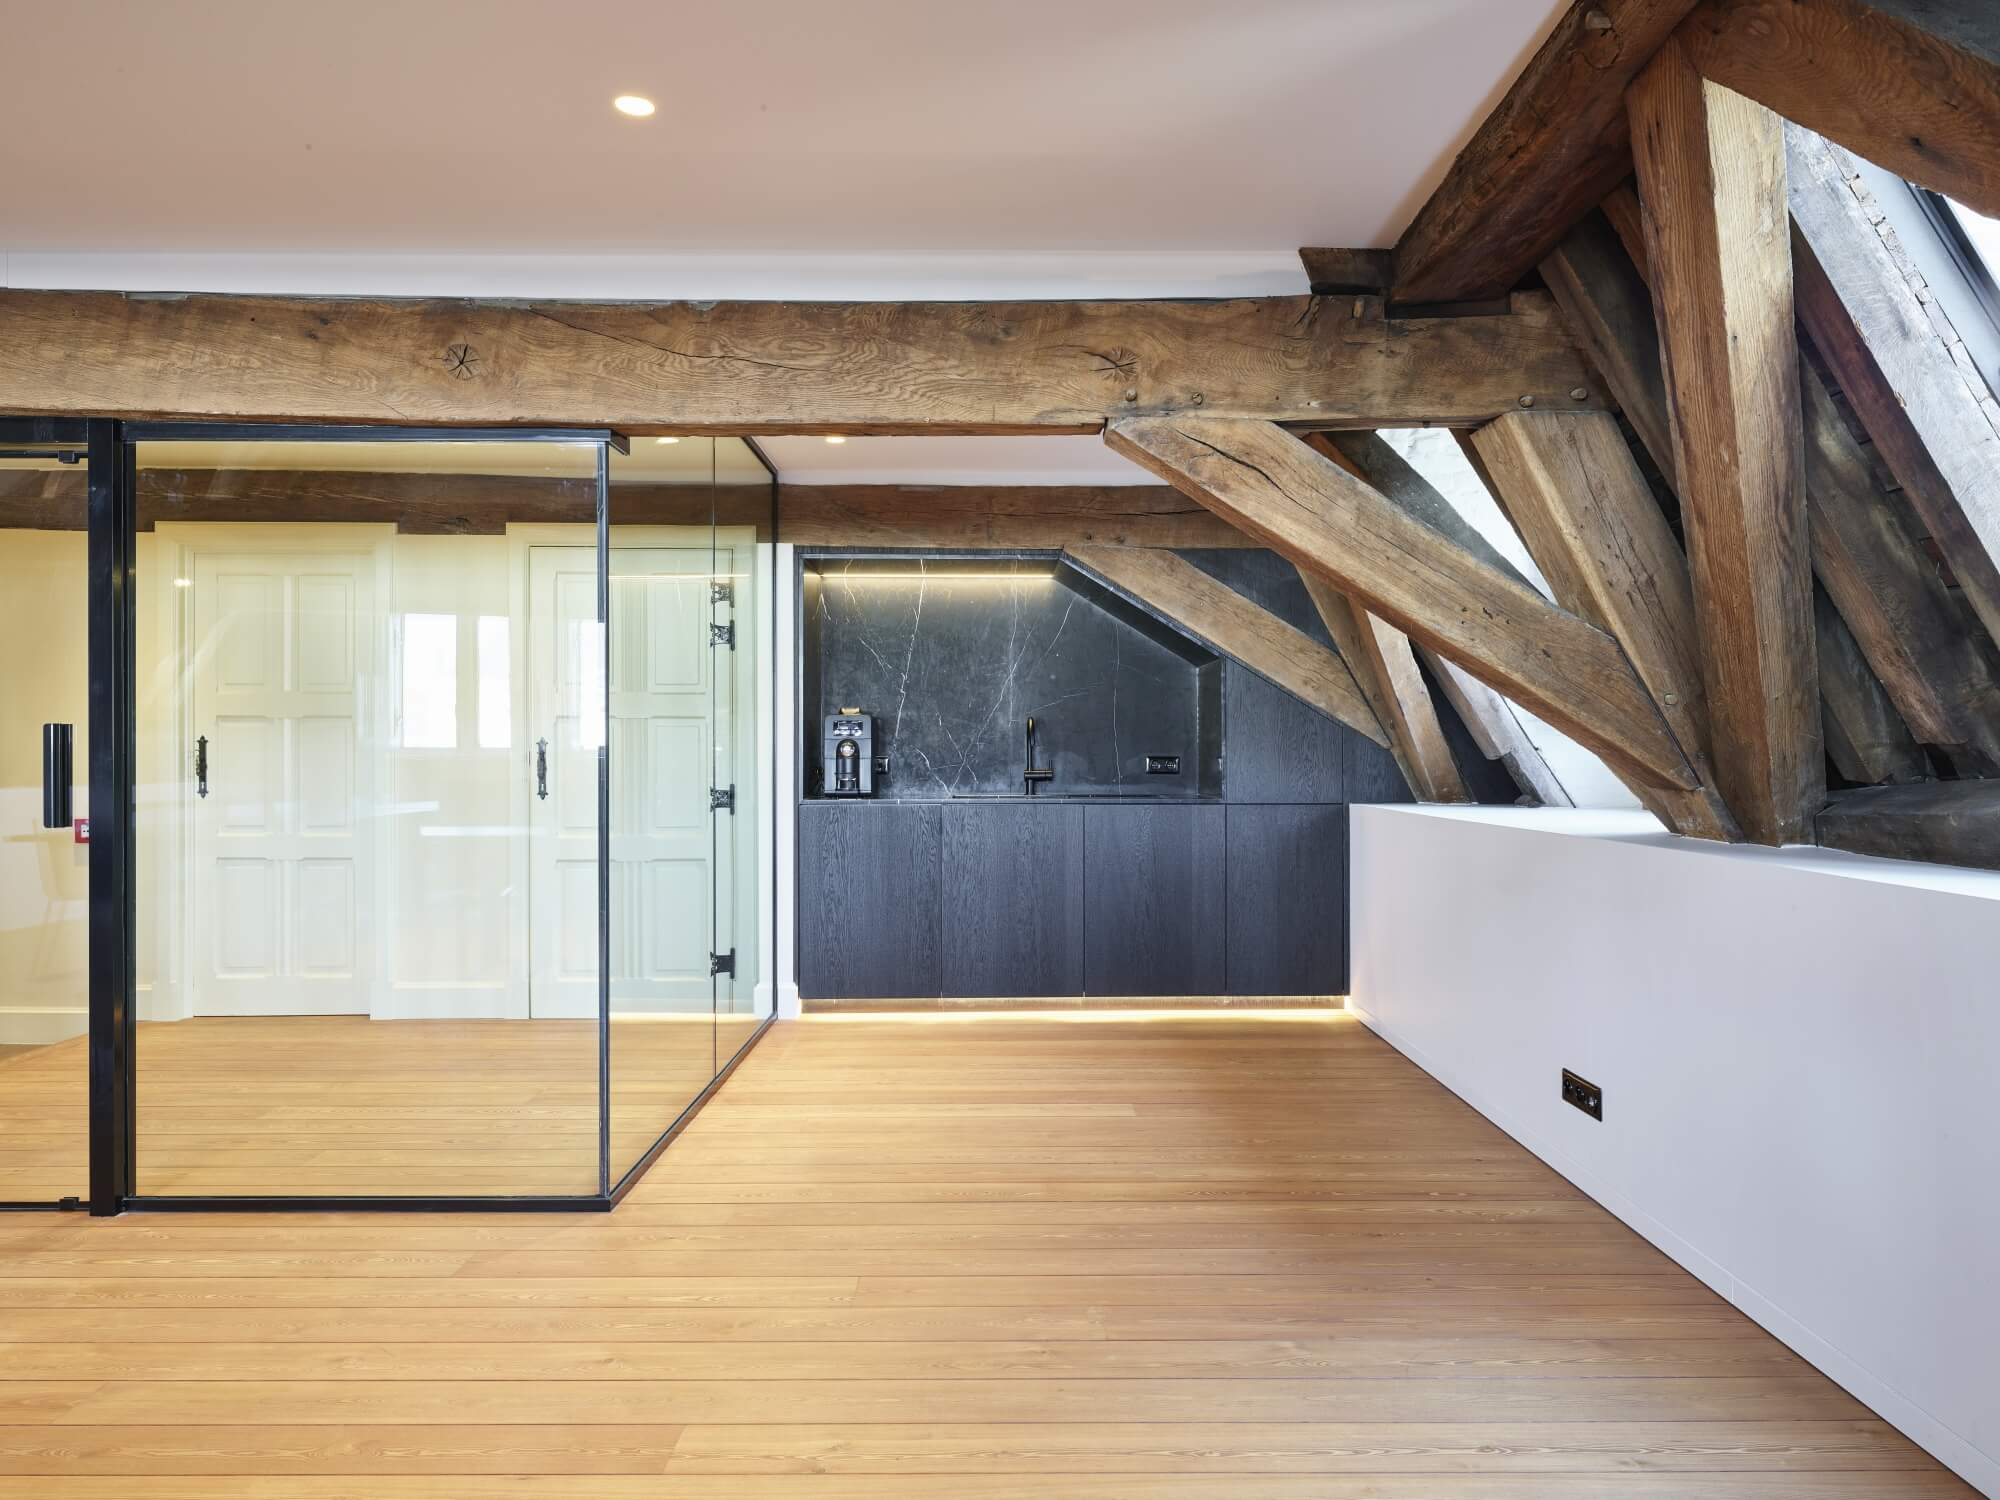 Office space with exposed wood beams, hardwood flooring and a glass rooms.